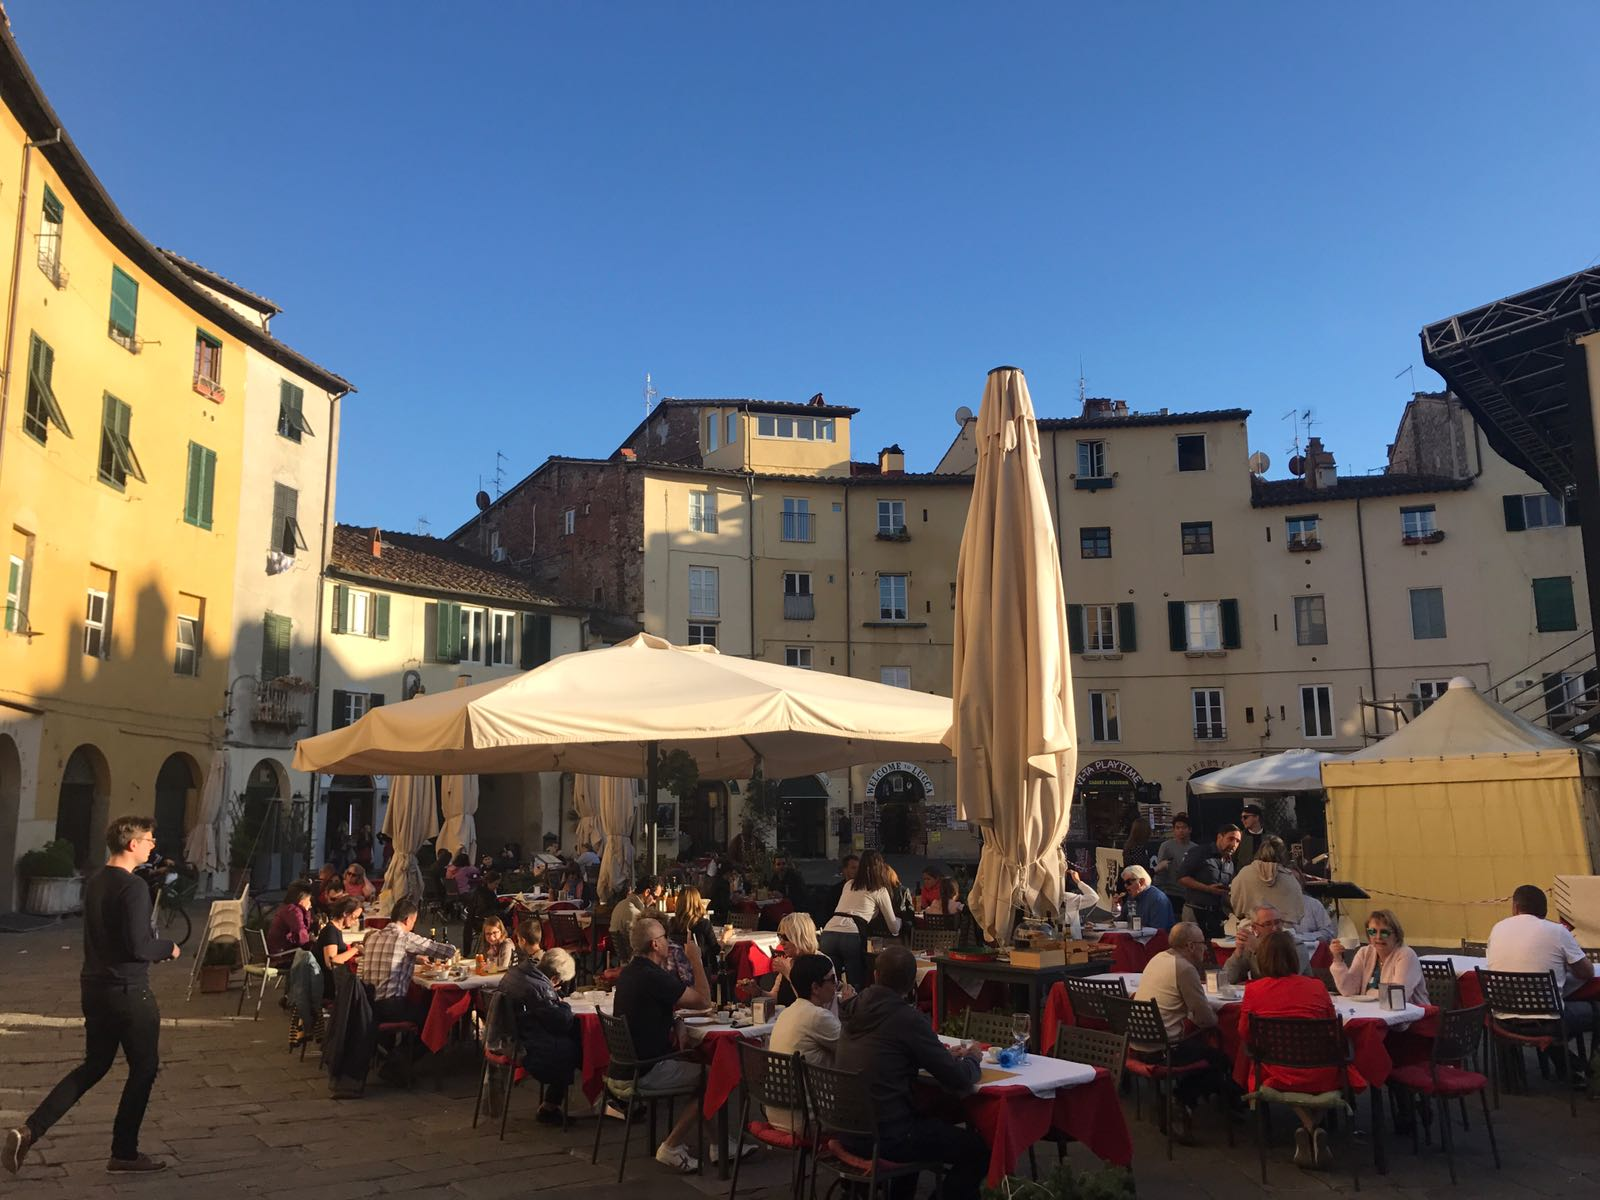 Many people dining under a blue sky in the centre of the Piazza Anfiteatro in Lucca